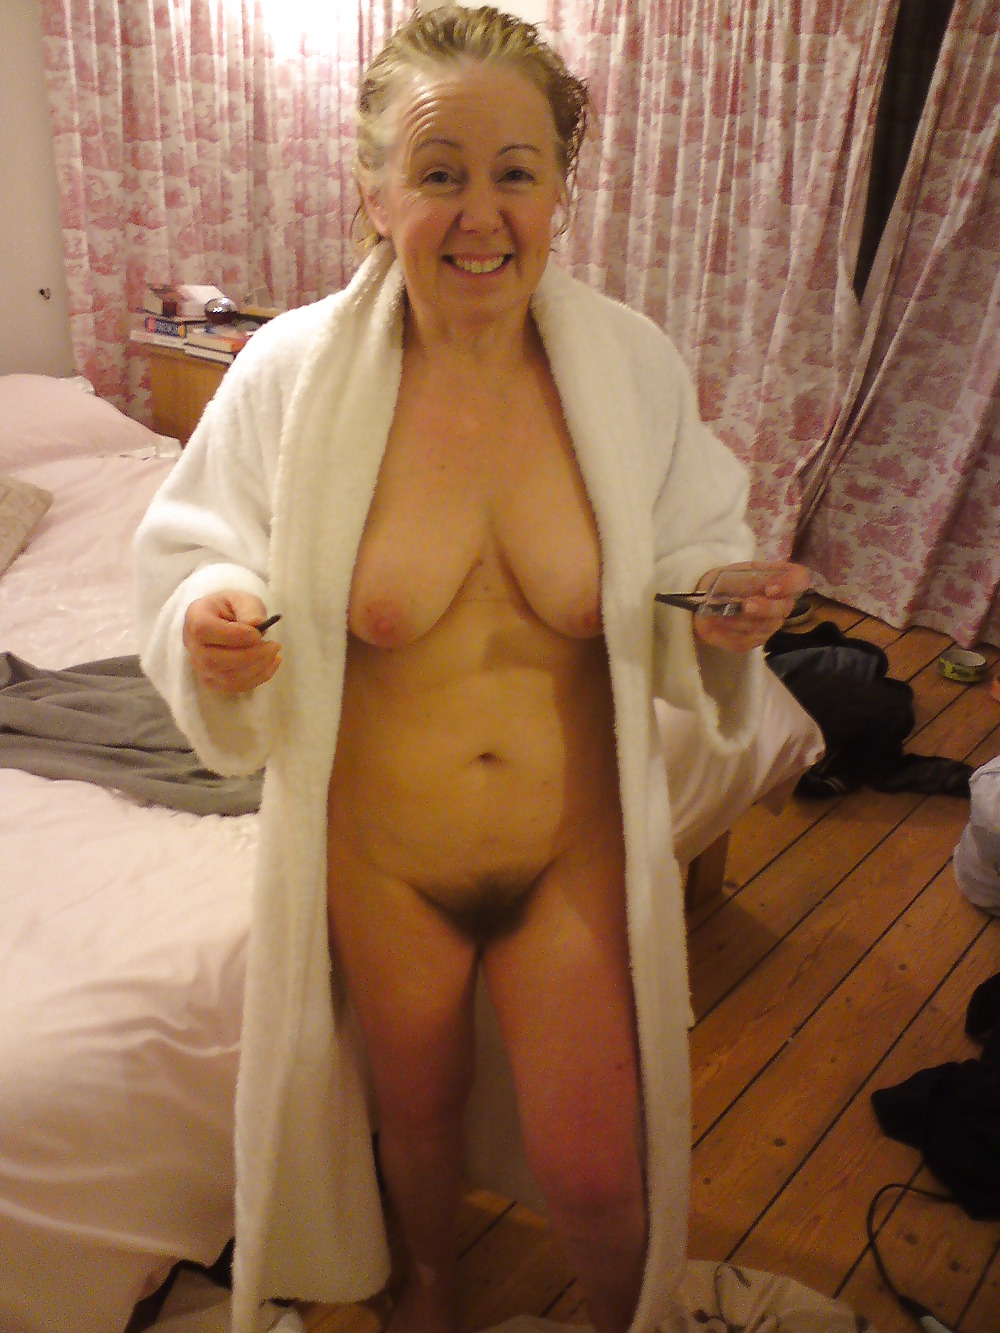 My Mature Nude Wife Portfolio - 10 Bilder - Xhamstercom-1935